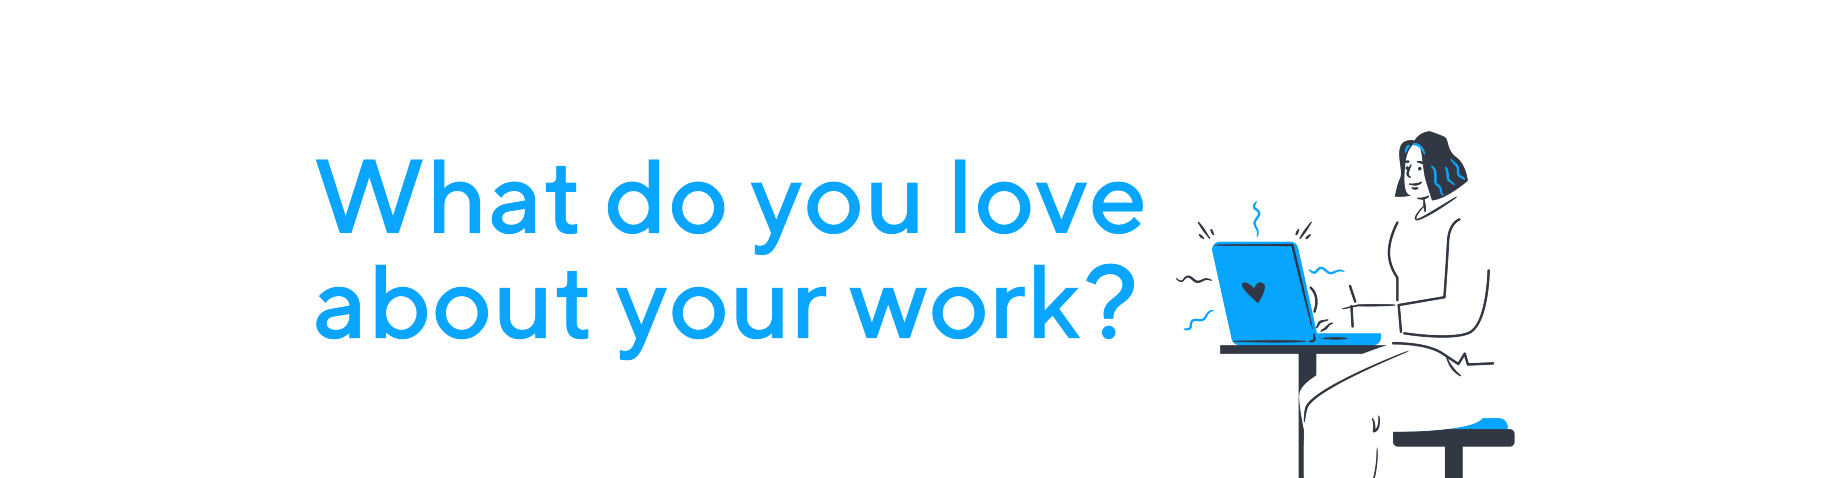 What do you love about your work?